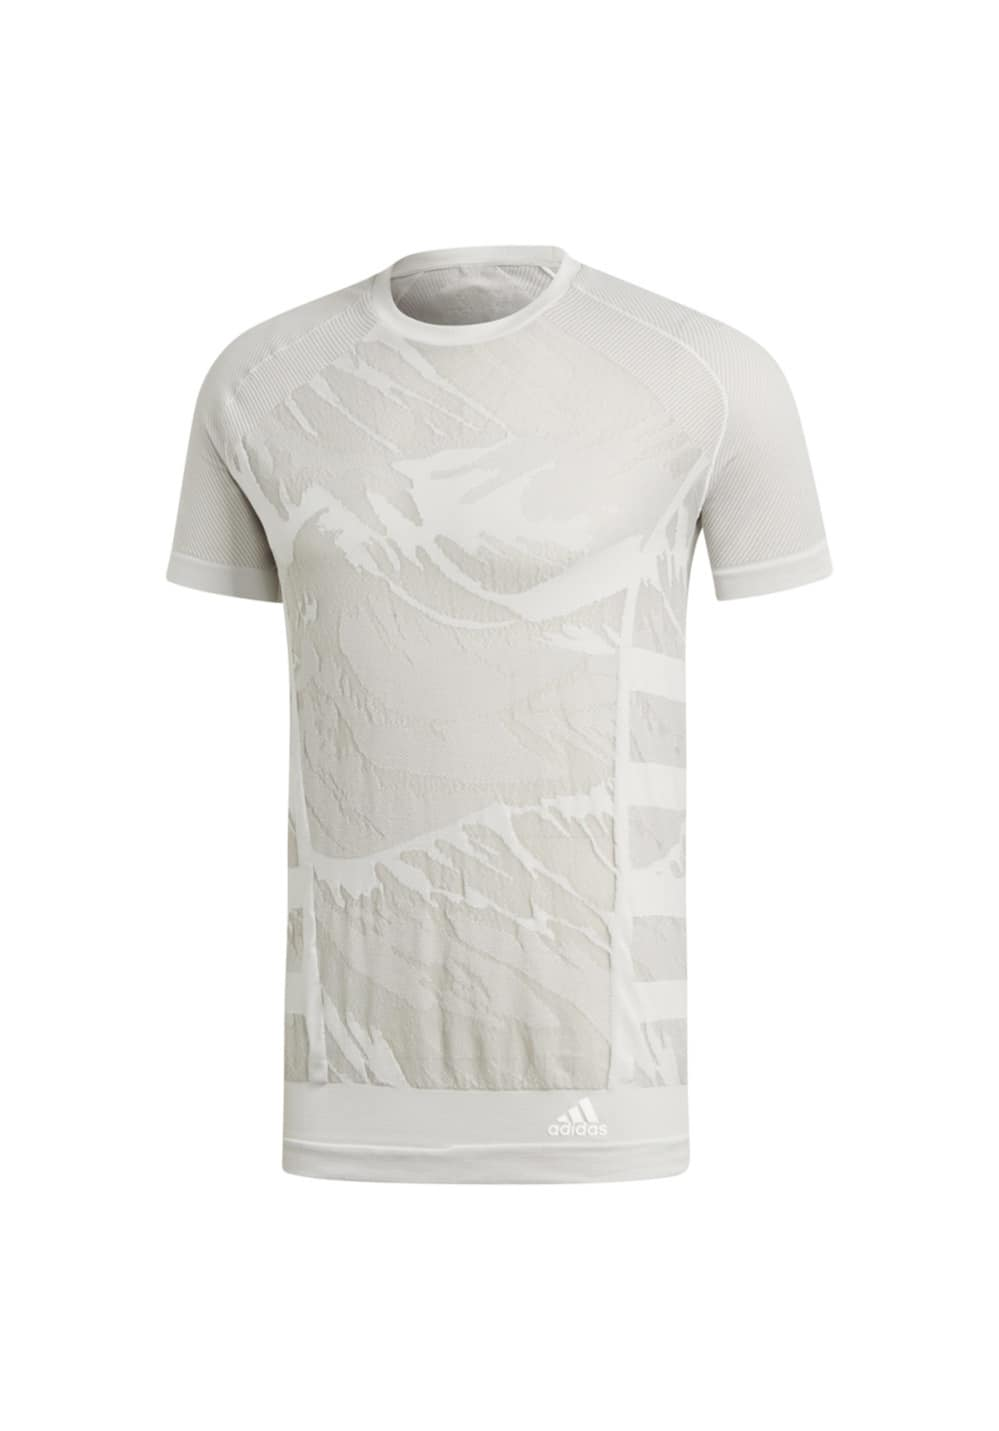 hot sales ac8d2 c3feb ... adidas Ultra Primeknit Parley Tee - Running tops for Men - White. Back  to Overview. 1 2. Previous